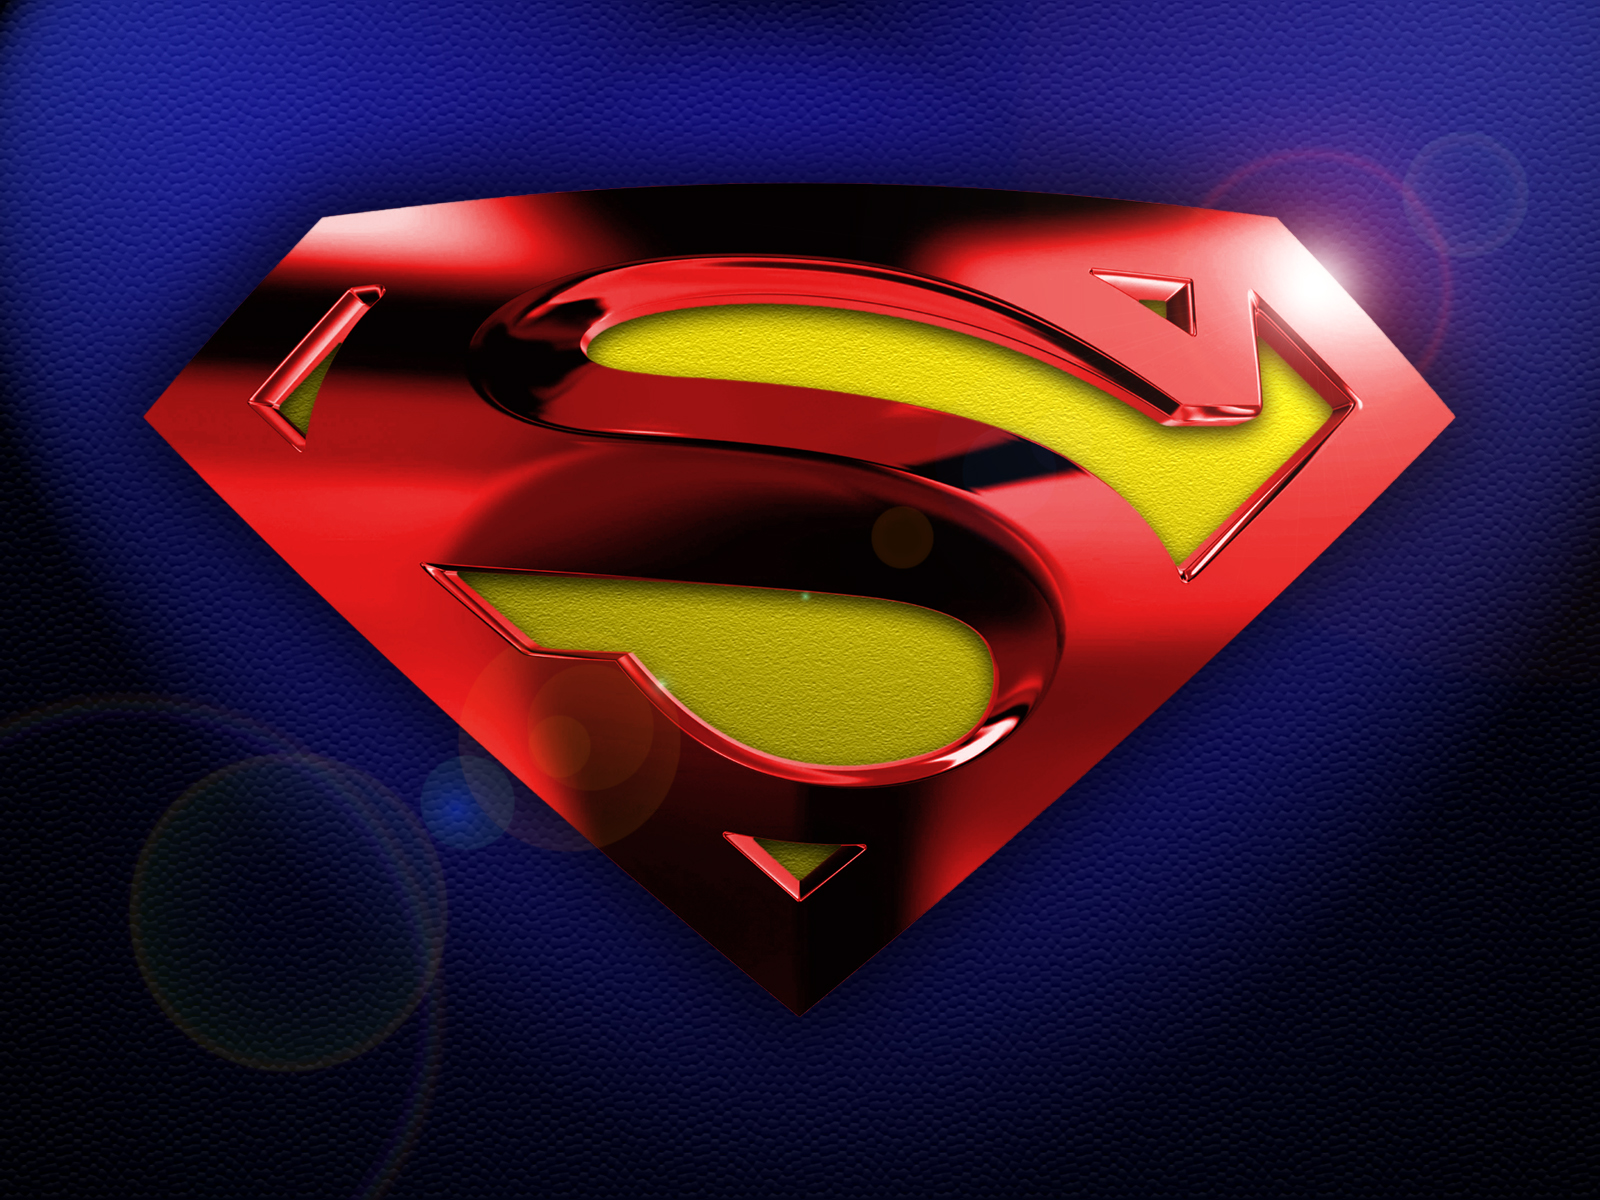 superman wallpaper hd waka 2 reality wallpapers superman wallpaper hd 1600x1200